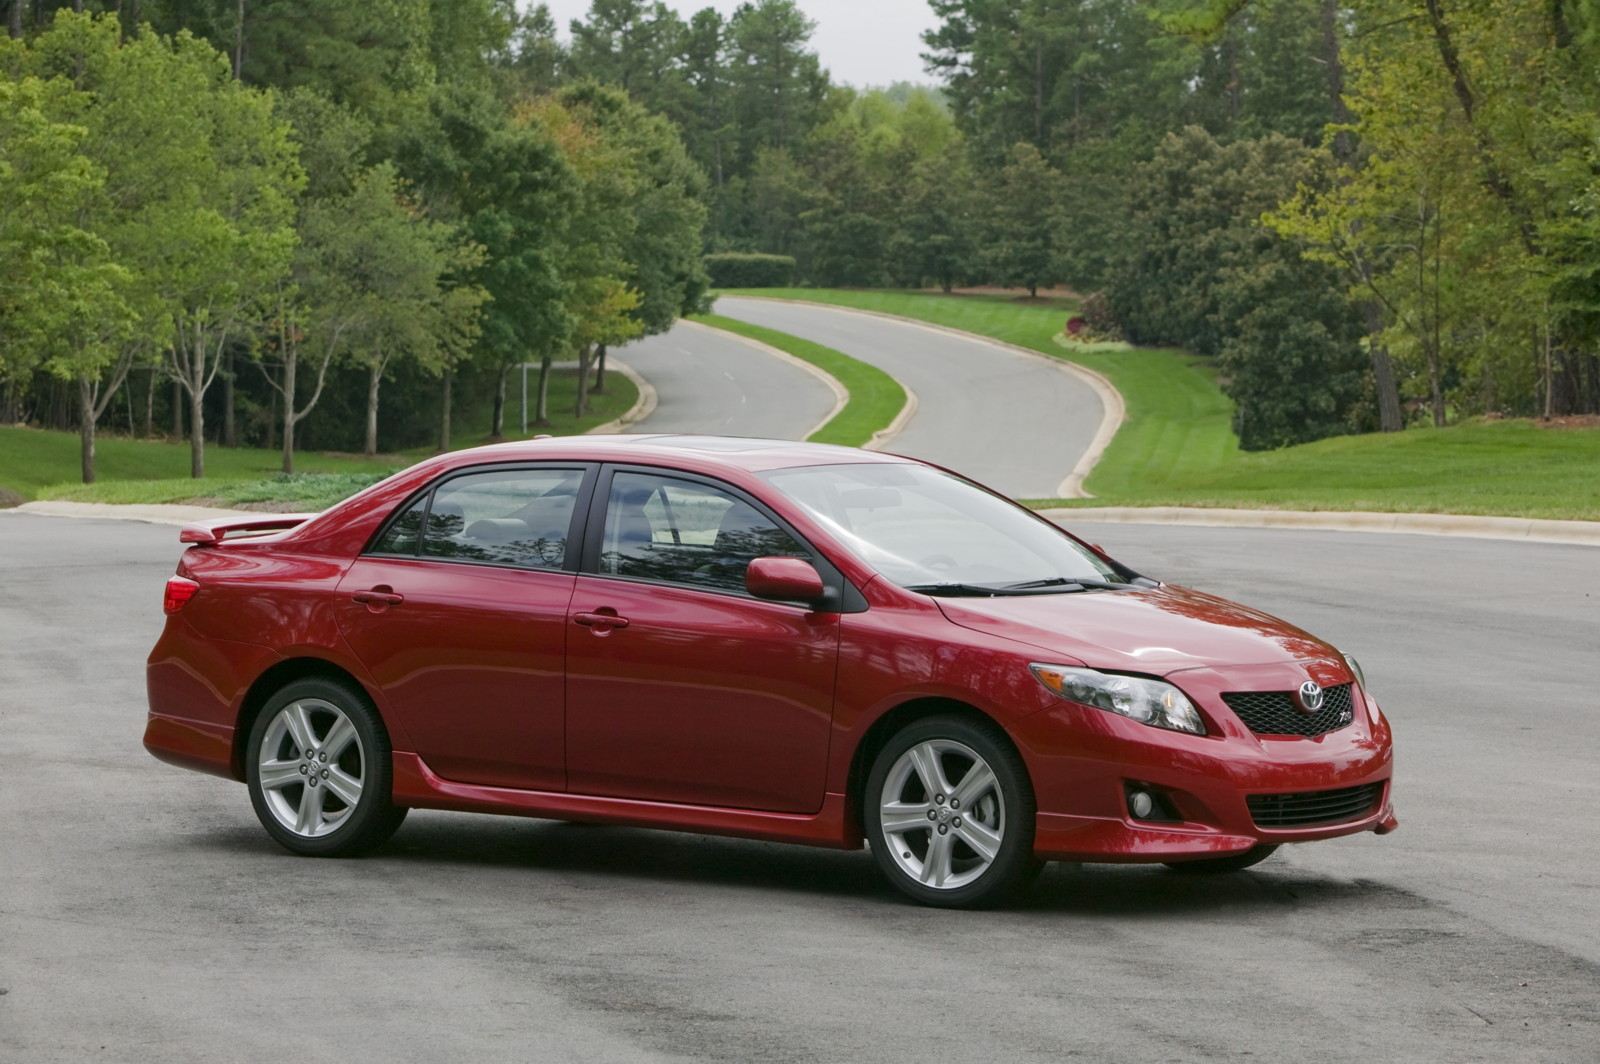 2005 Toyota Corolla Mpg >> 2010 Toyota Corolla Review Ratings Specs Prices And